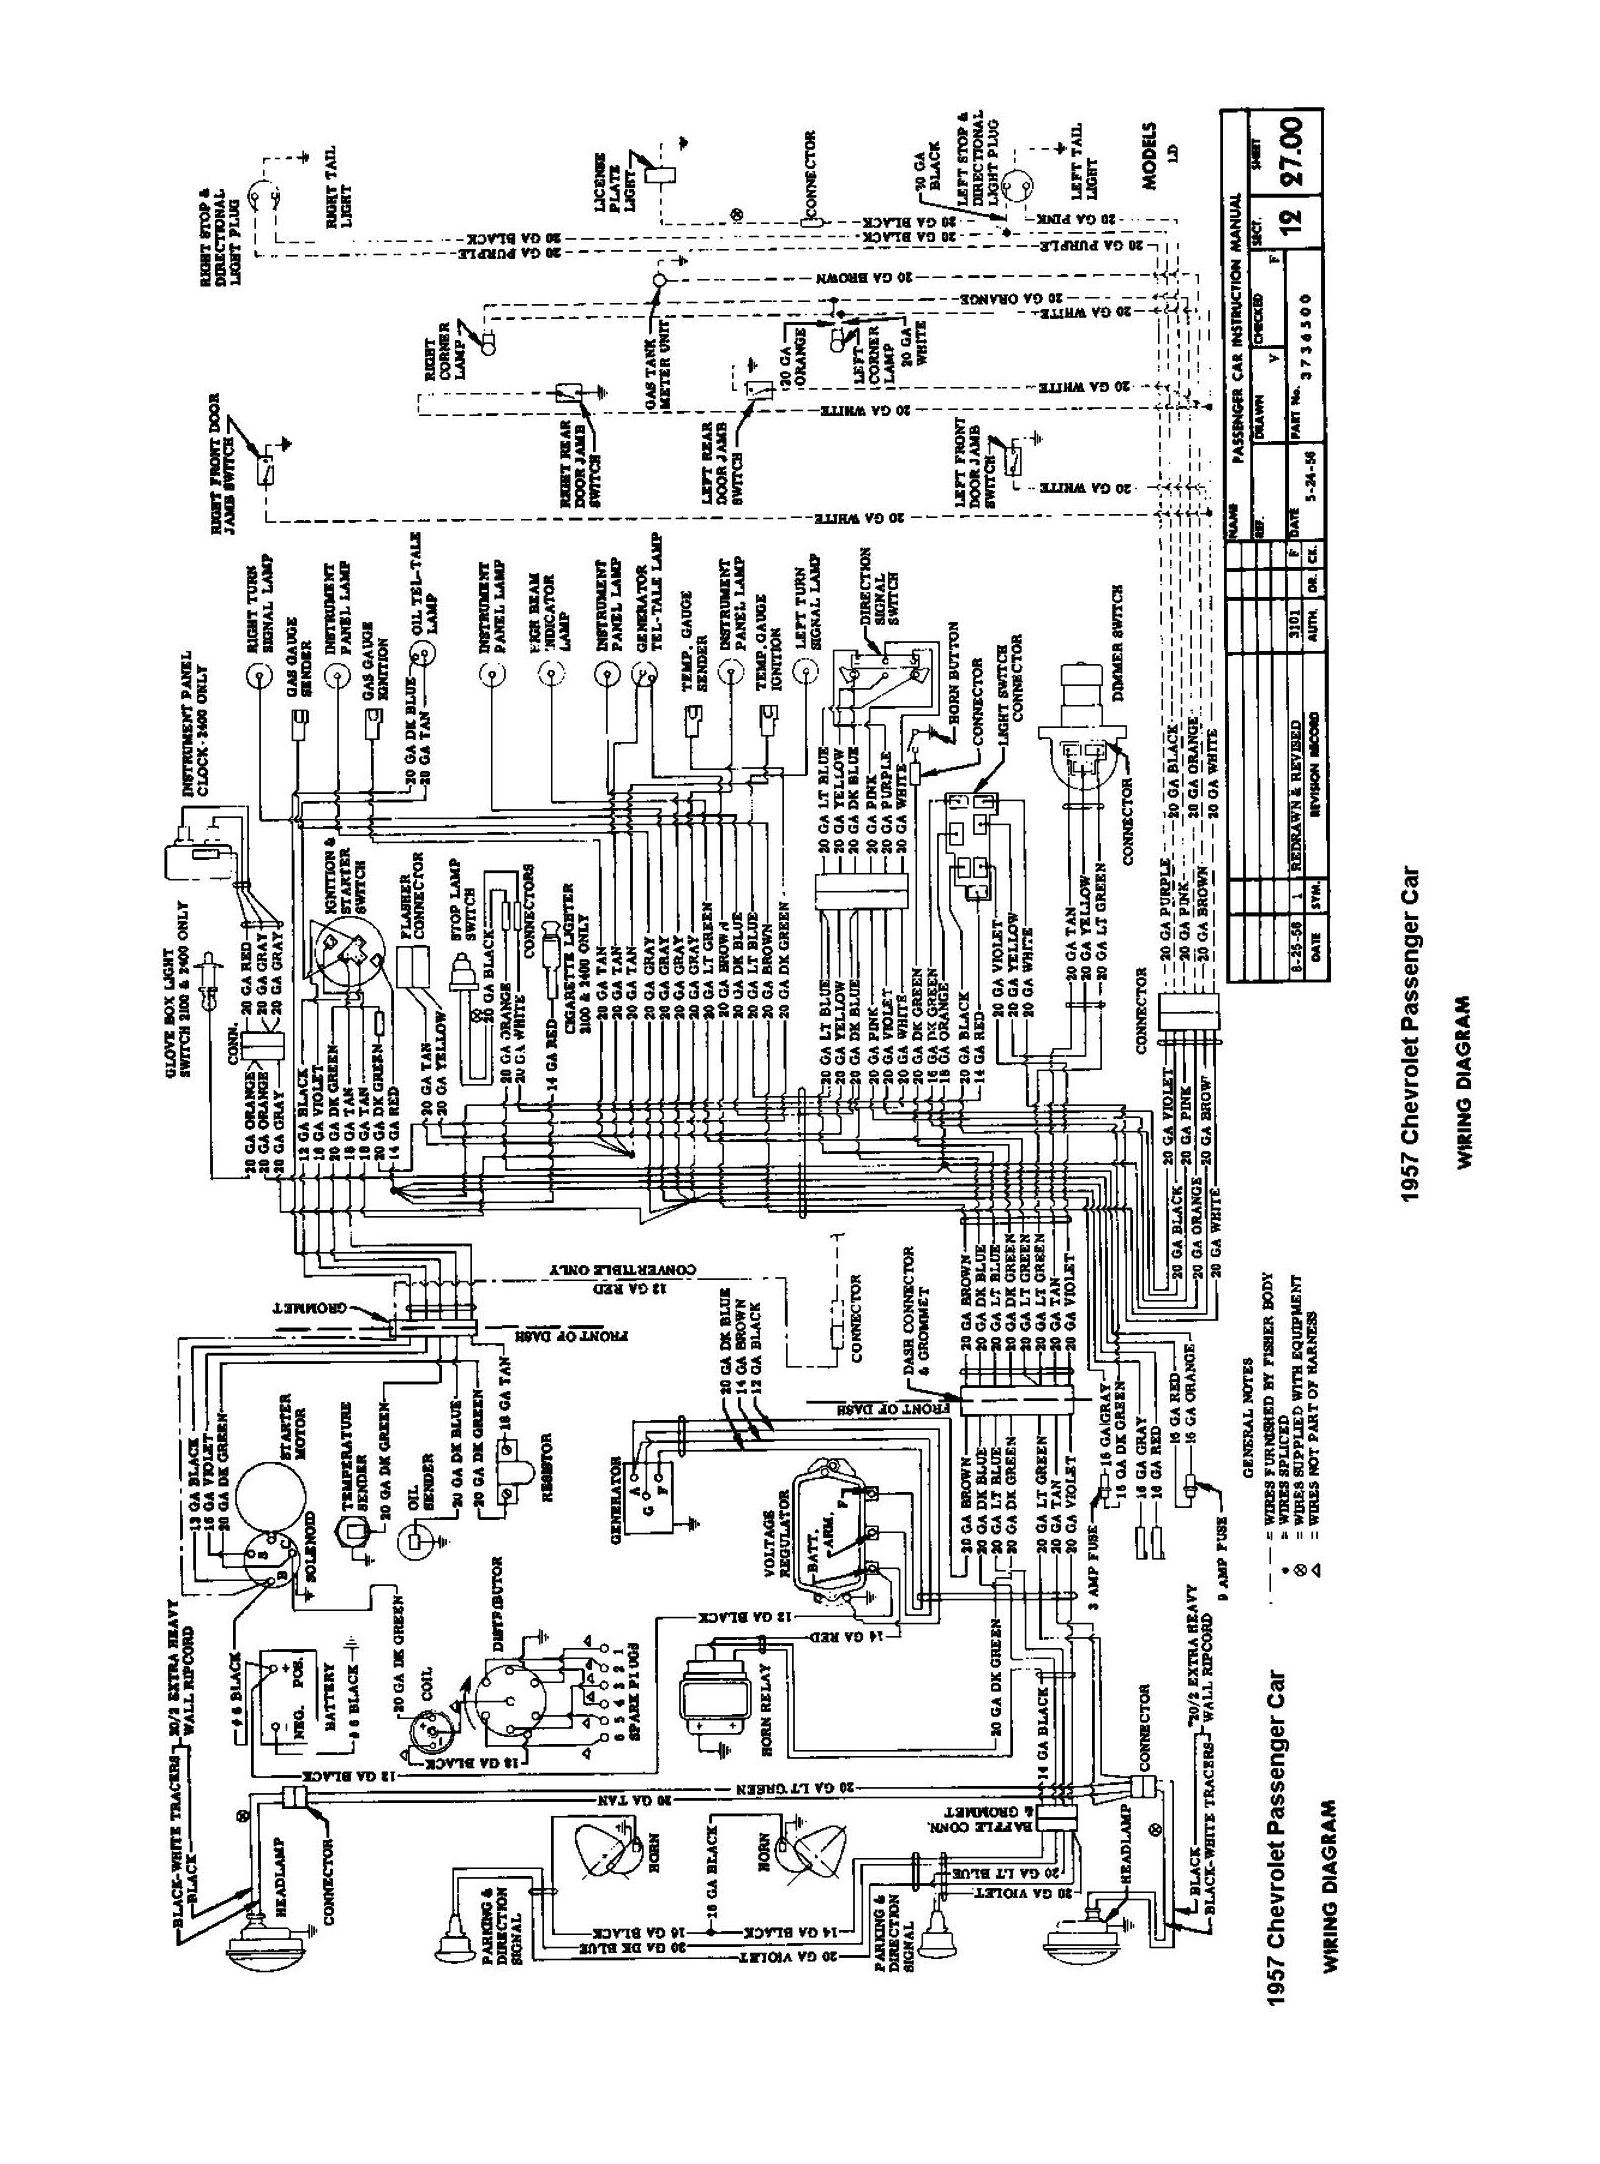 Chevy Wiring Diagrams Automotive Wiring Diagram